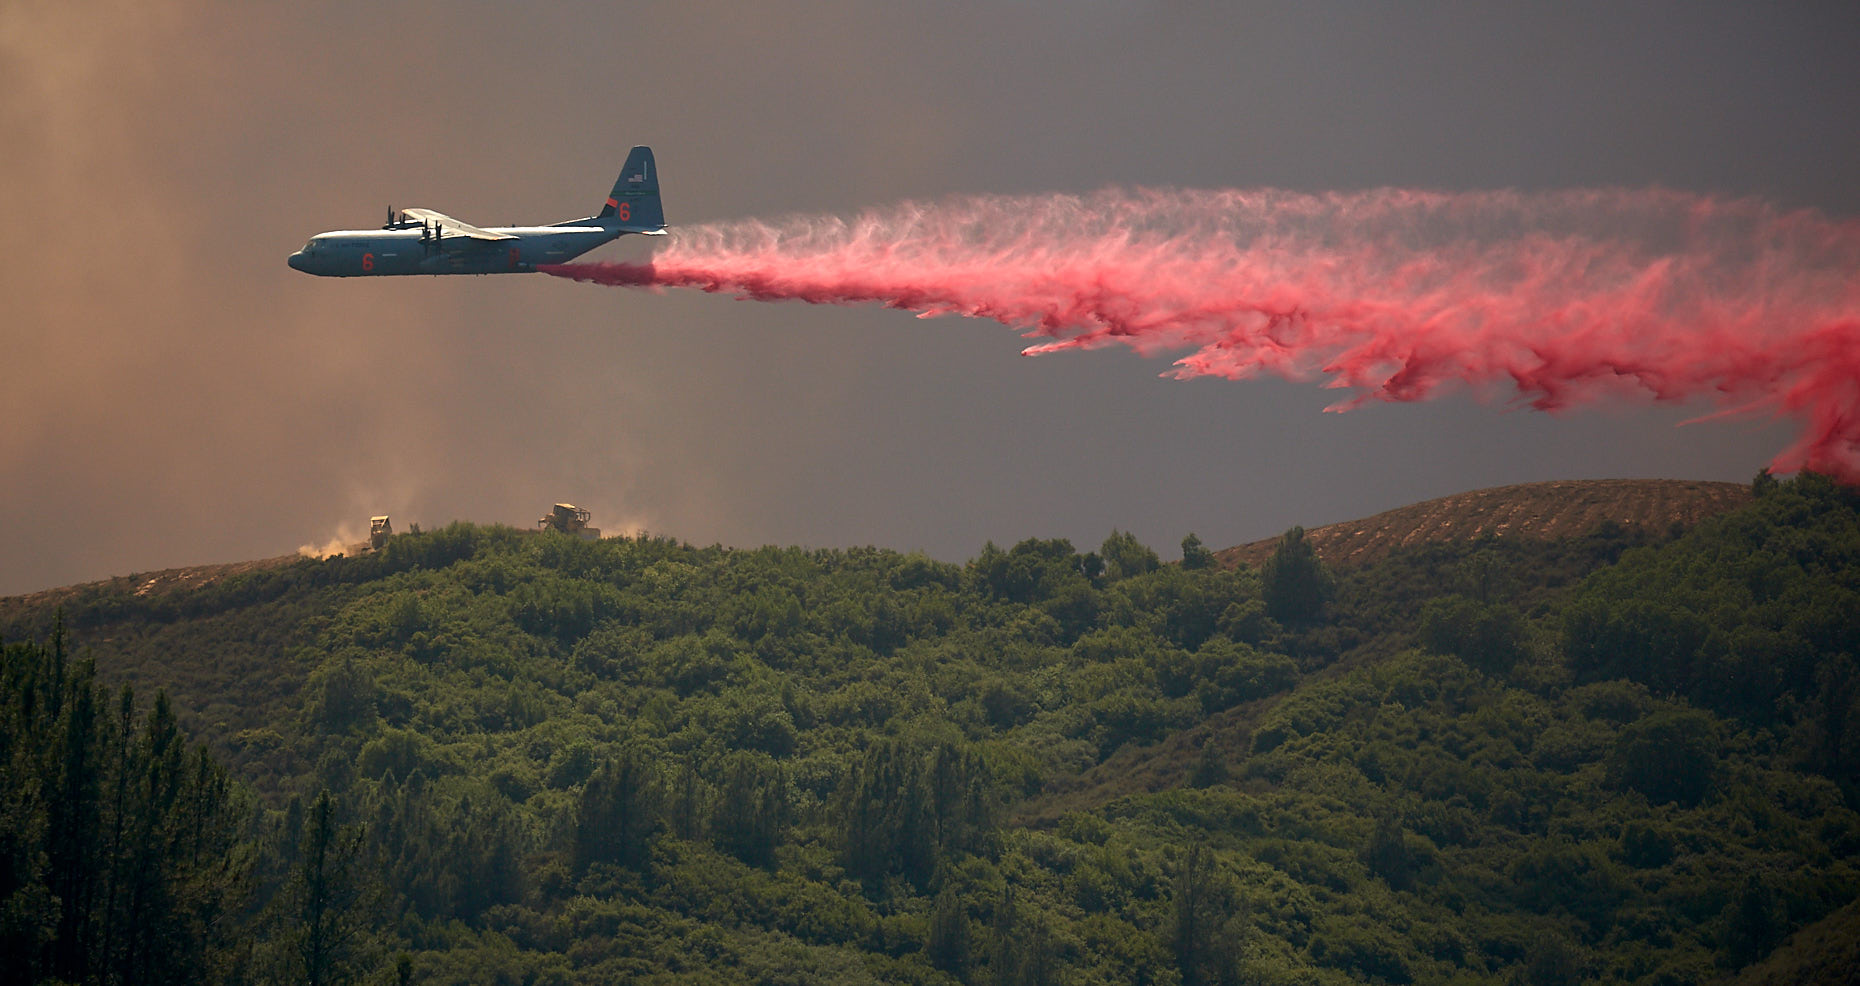 Fire Bomber Protects Crew with Retardant Drop